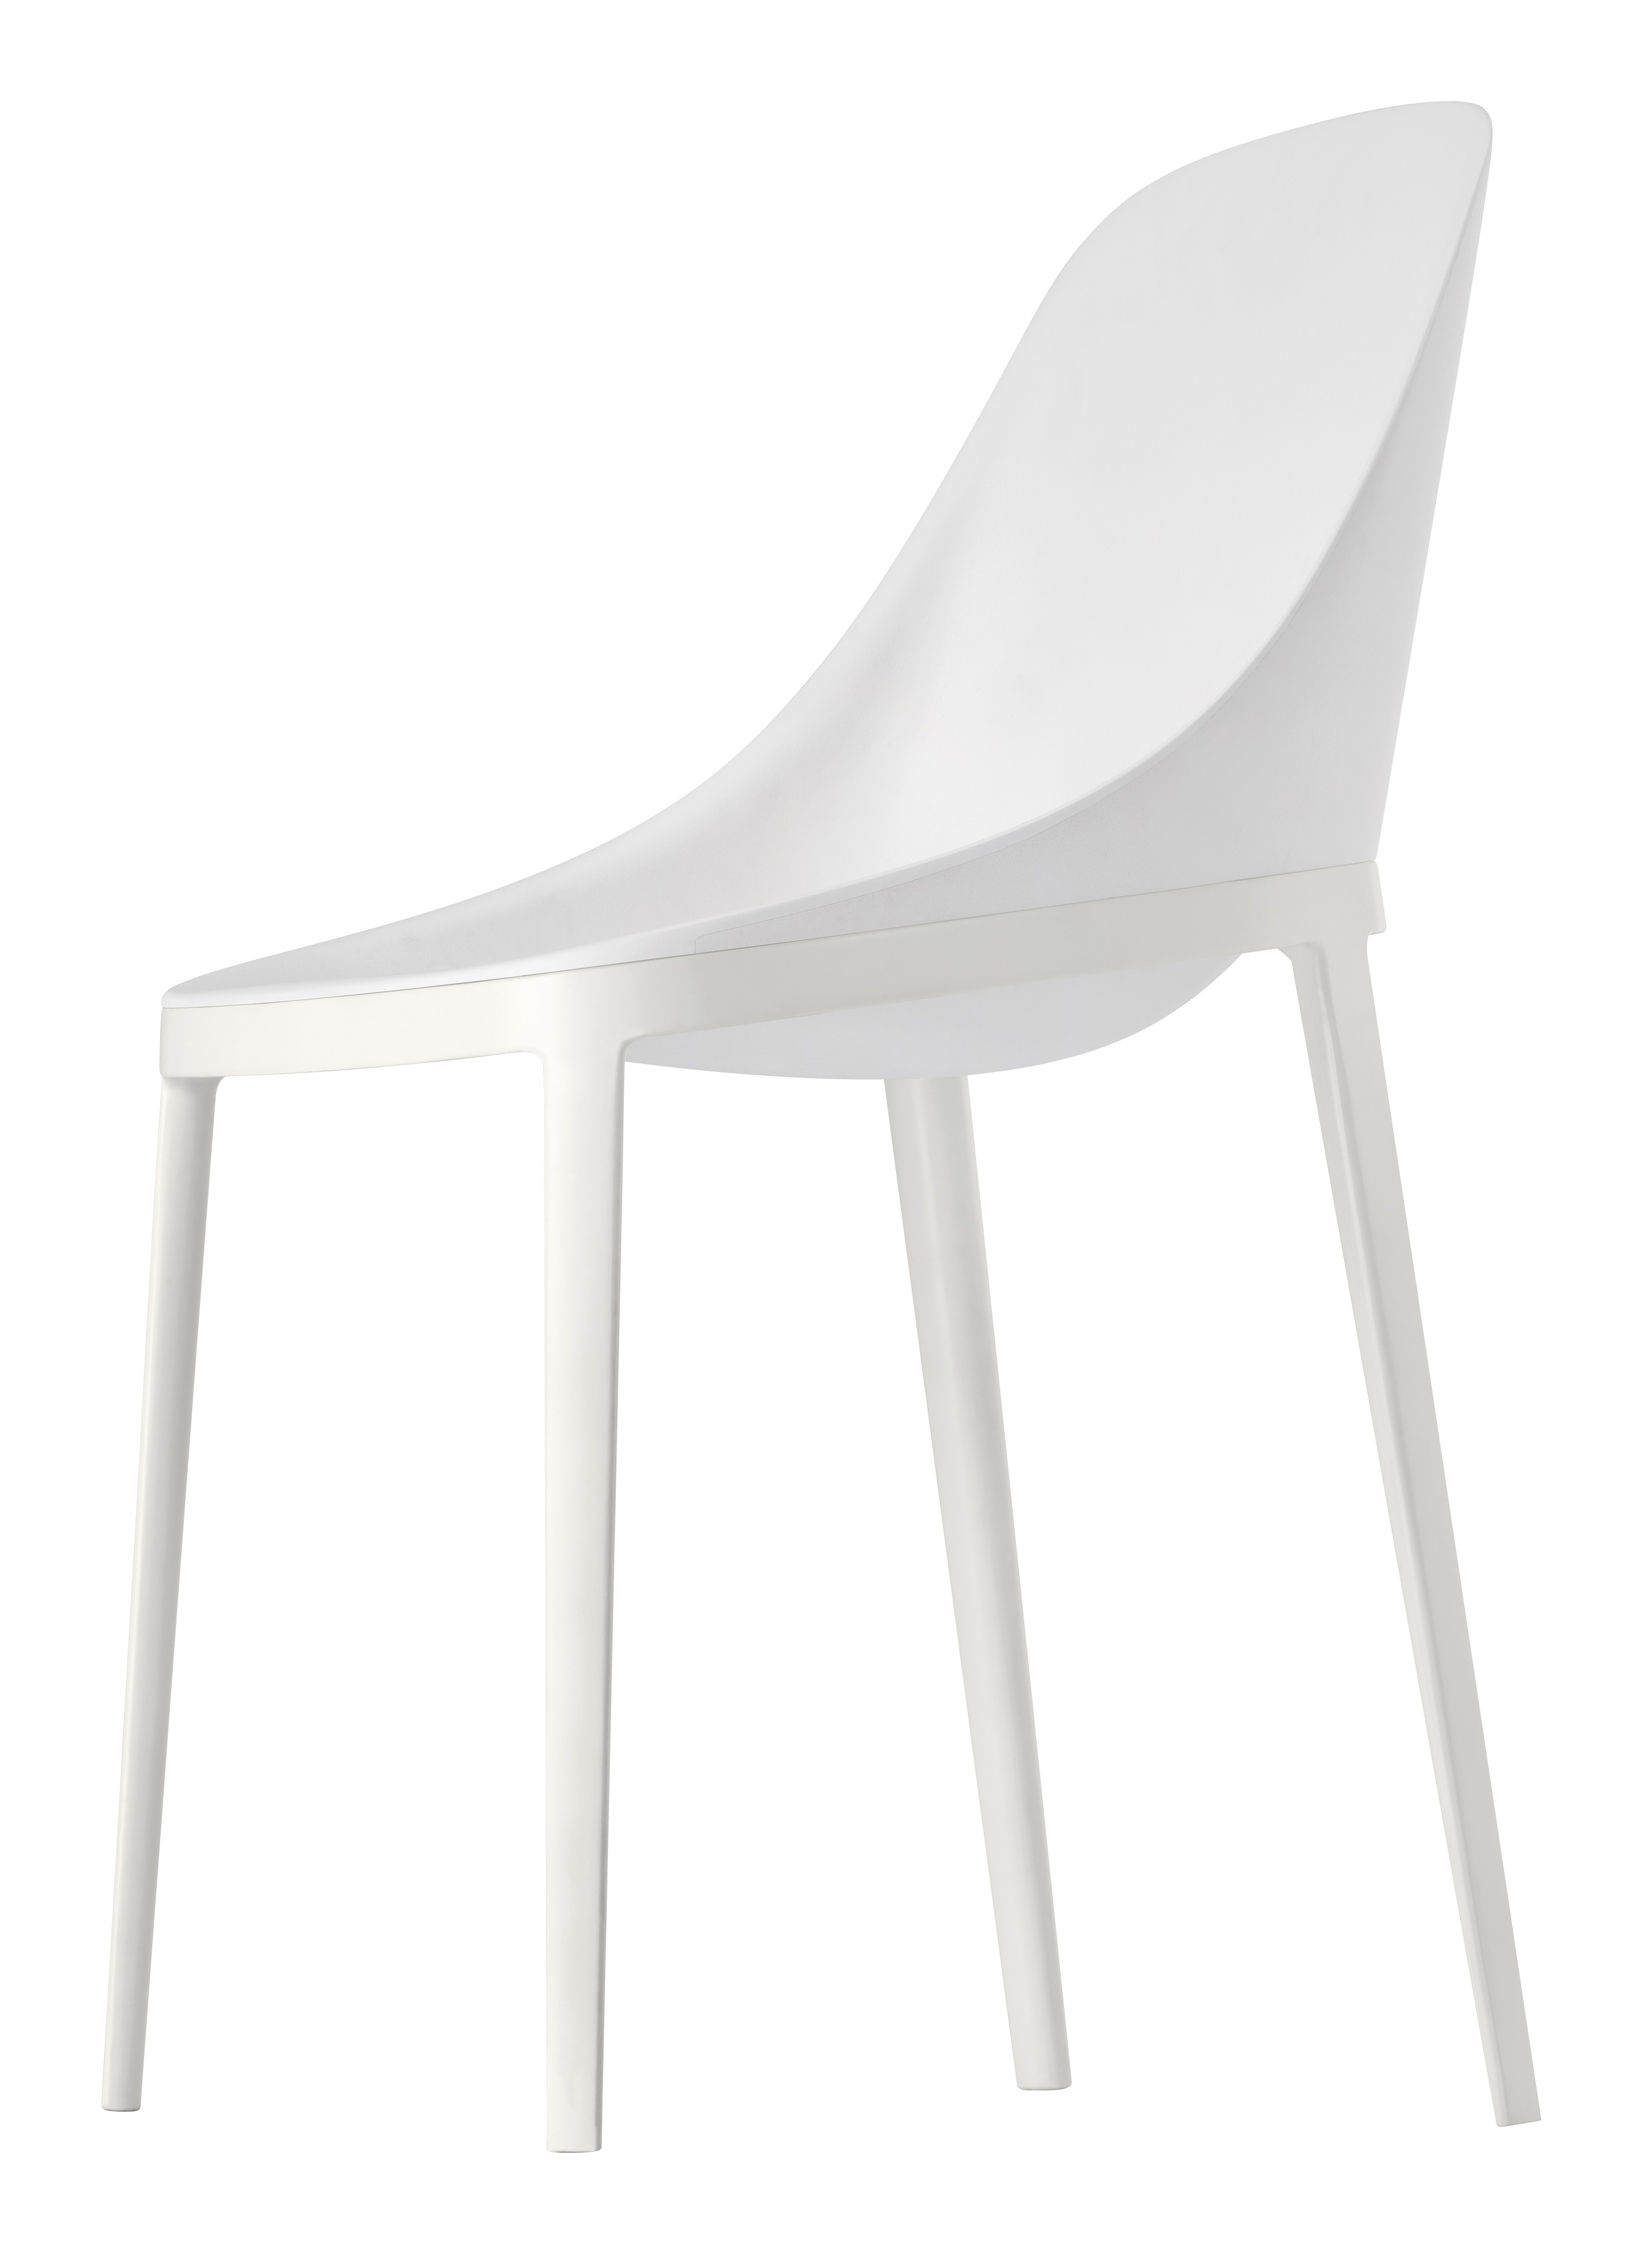 Furniture - Chairs - Elle Chair - Polyuréthane seat & metal legs by Alias - White - Lacquered aluminium, Polyurethane